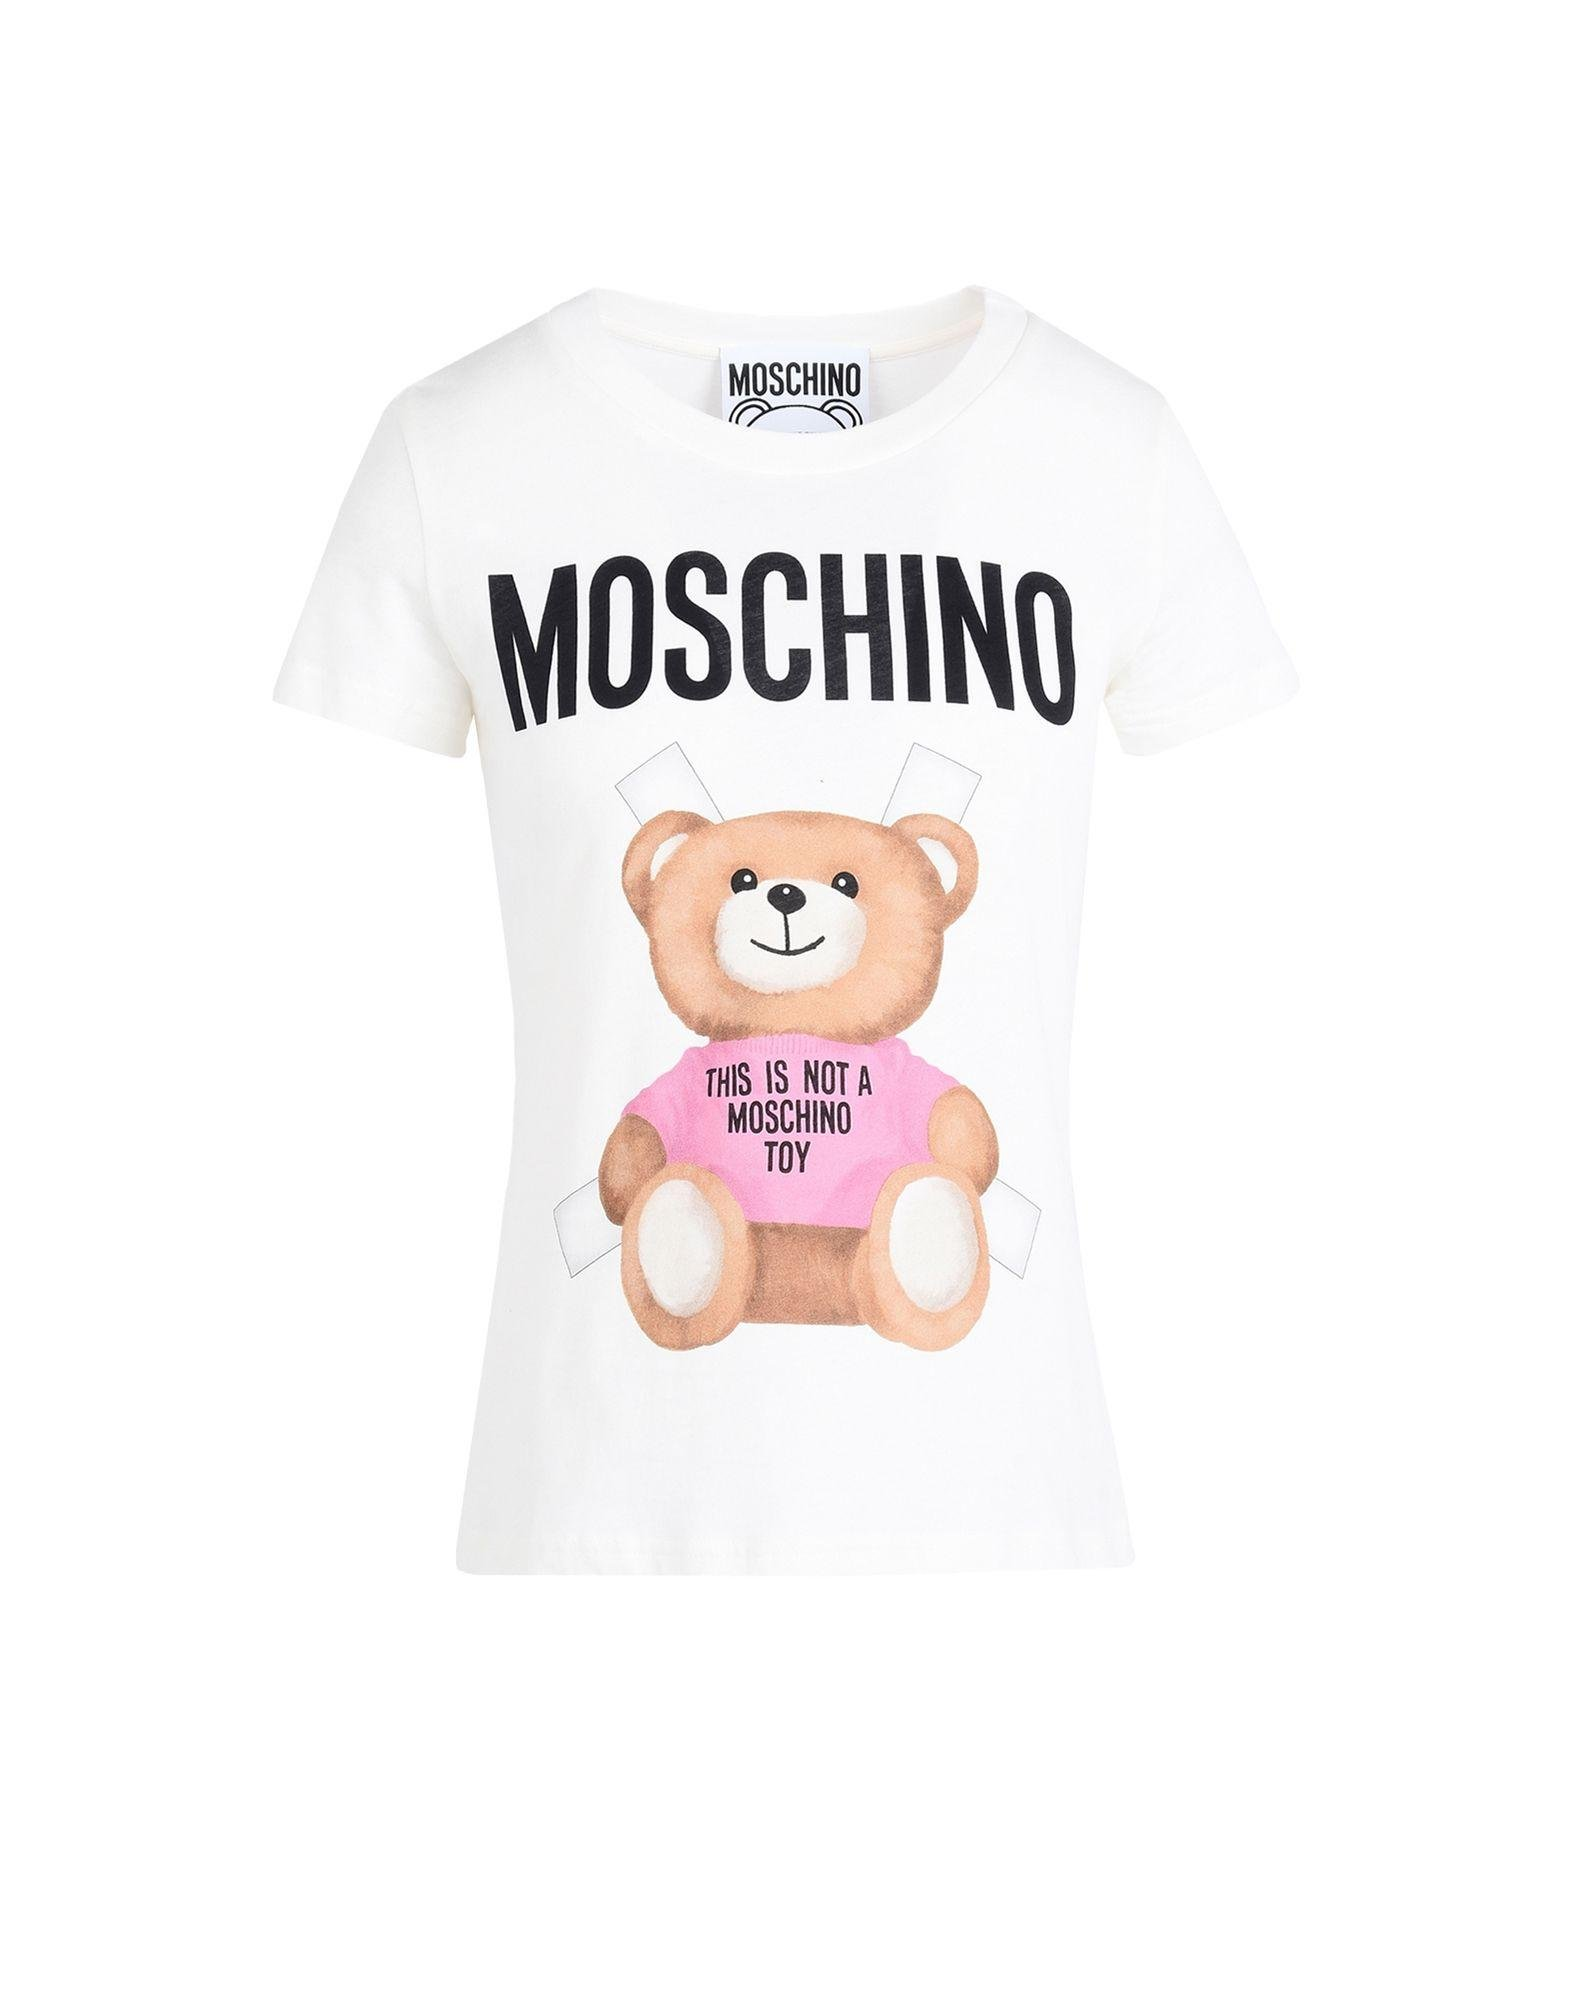 Moschino Short Sleeve T-shirts in White | Lyst